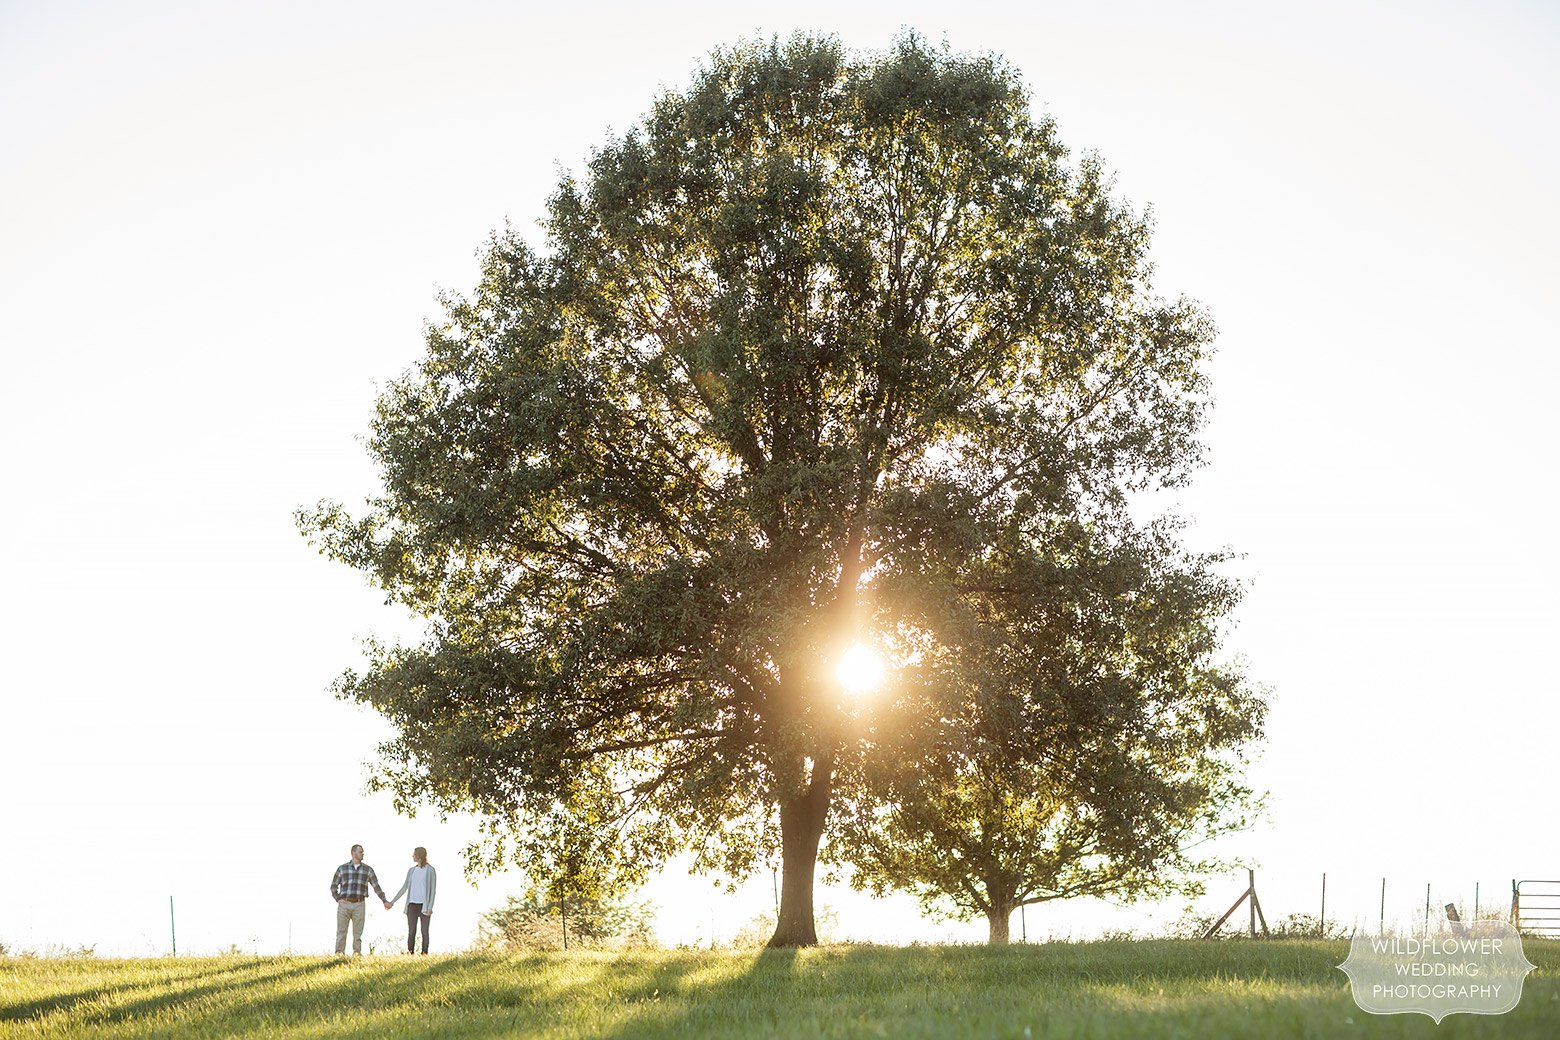 Scenic photo of the couple standing under a giant tree at sunset in Boonville, MO.